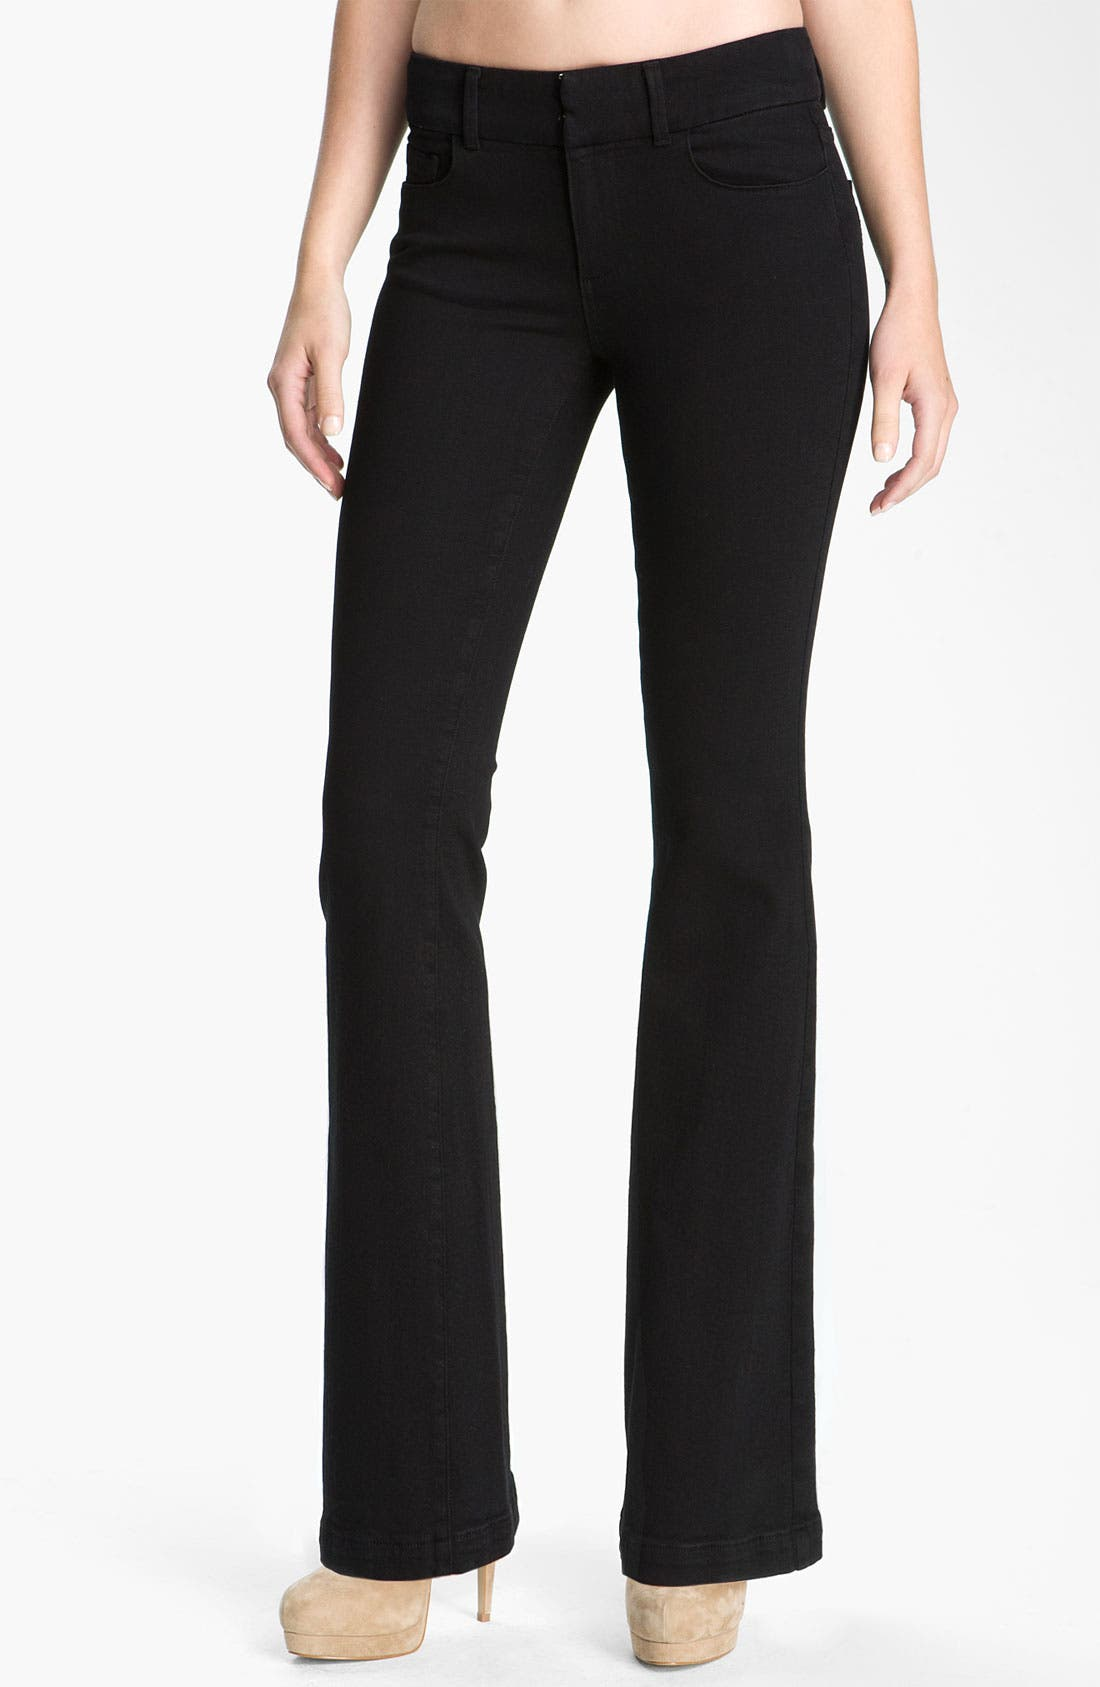 Alternate Image 1 Selected - Paige Denim 'Kennedy' Bootcut Stretch Jeans (Black Ink)